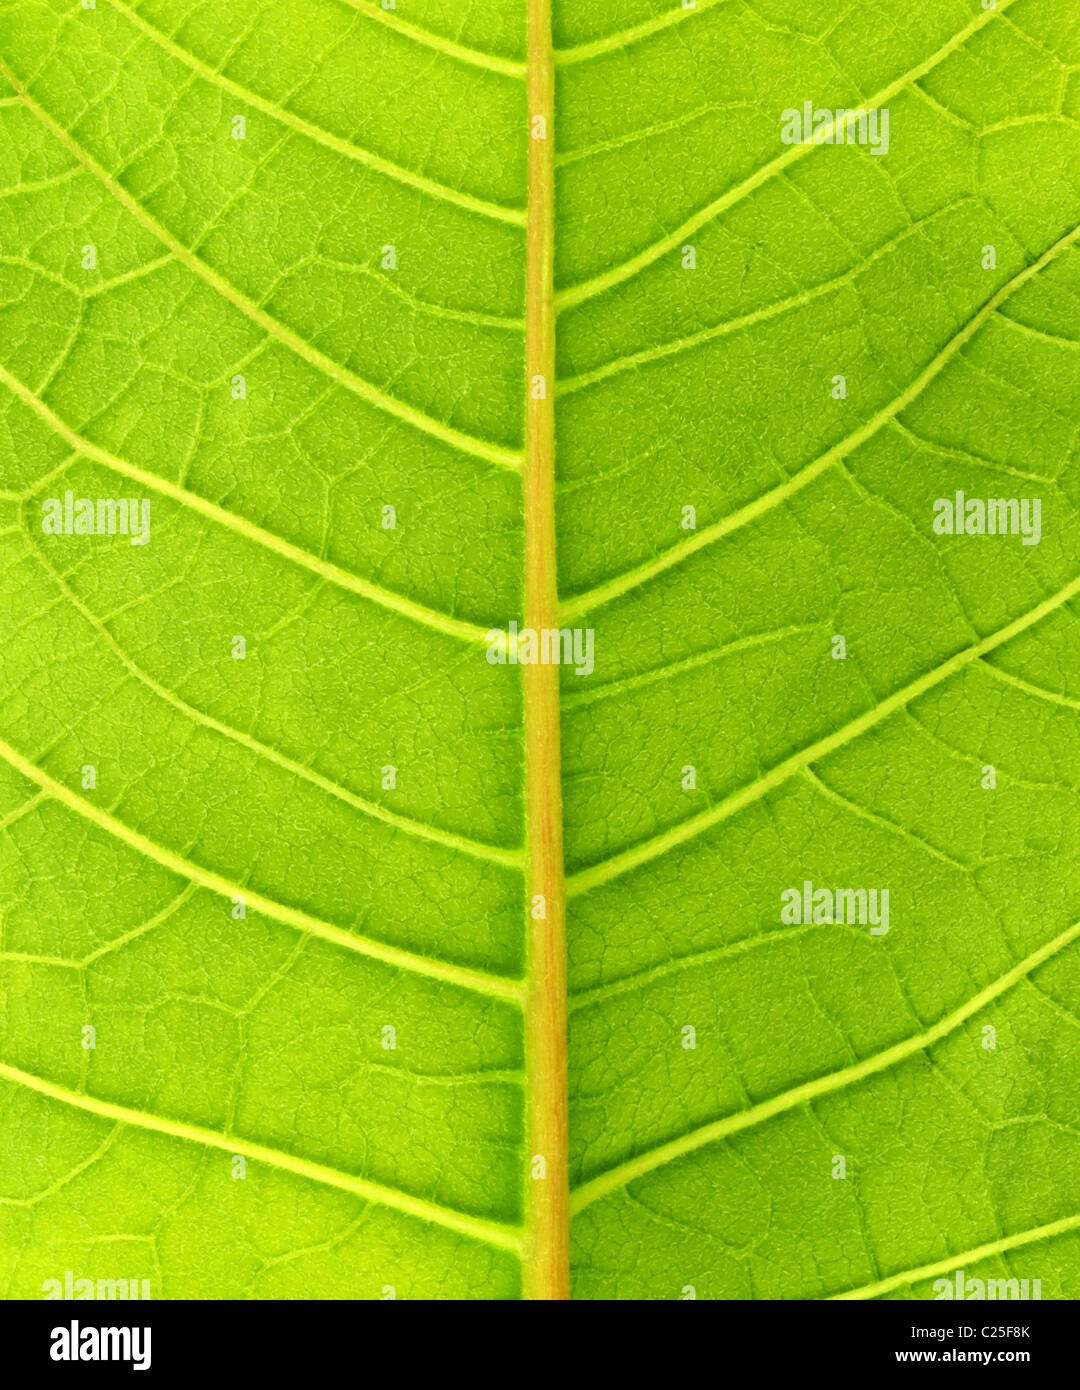 Green leaf close up - Stock Image